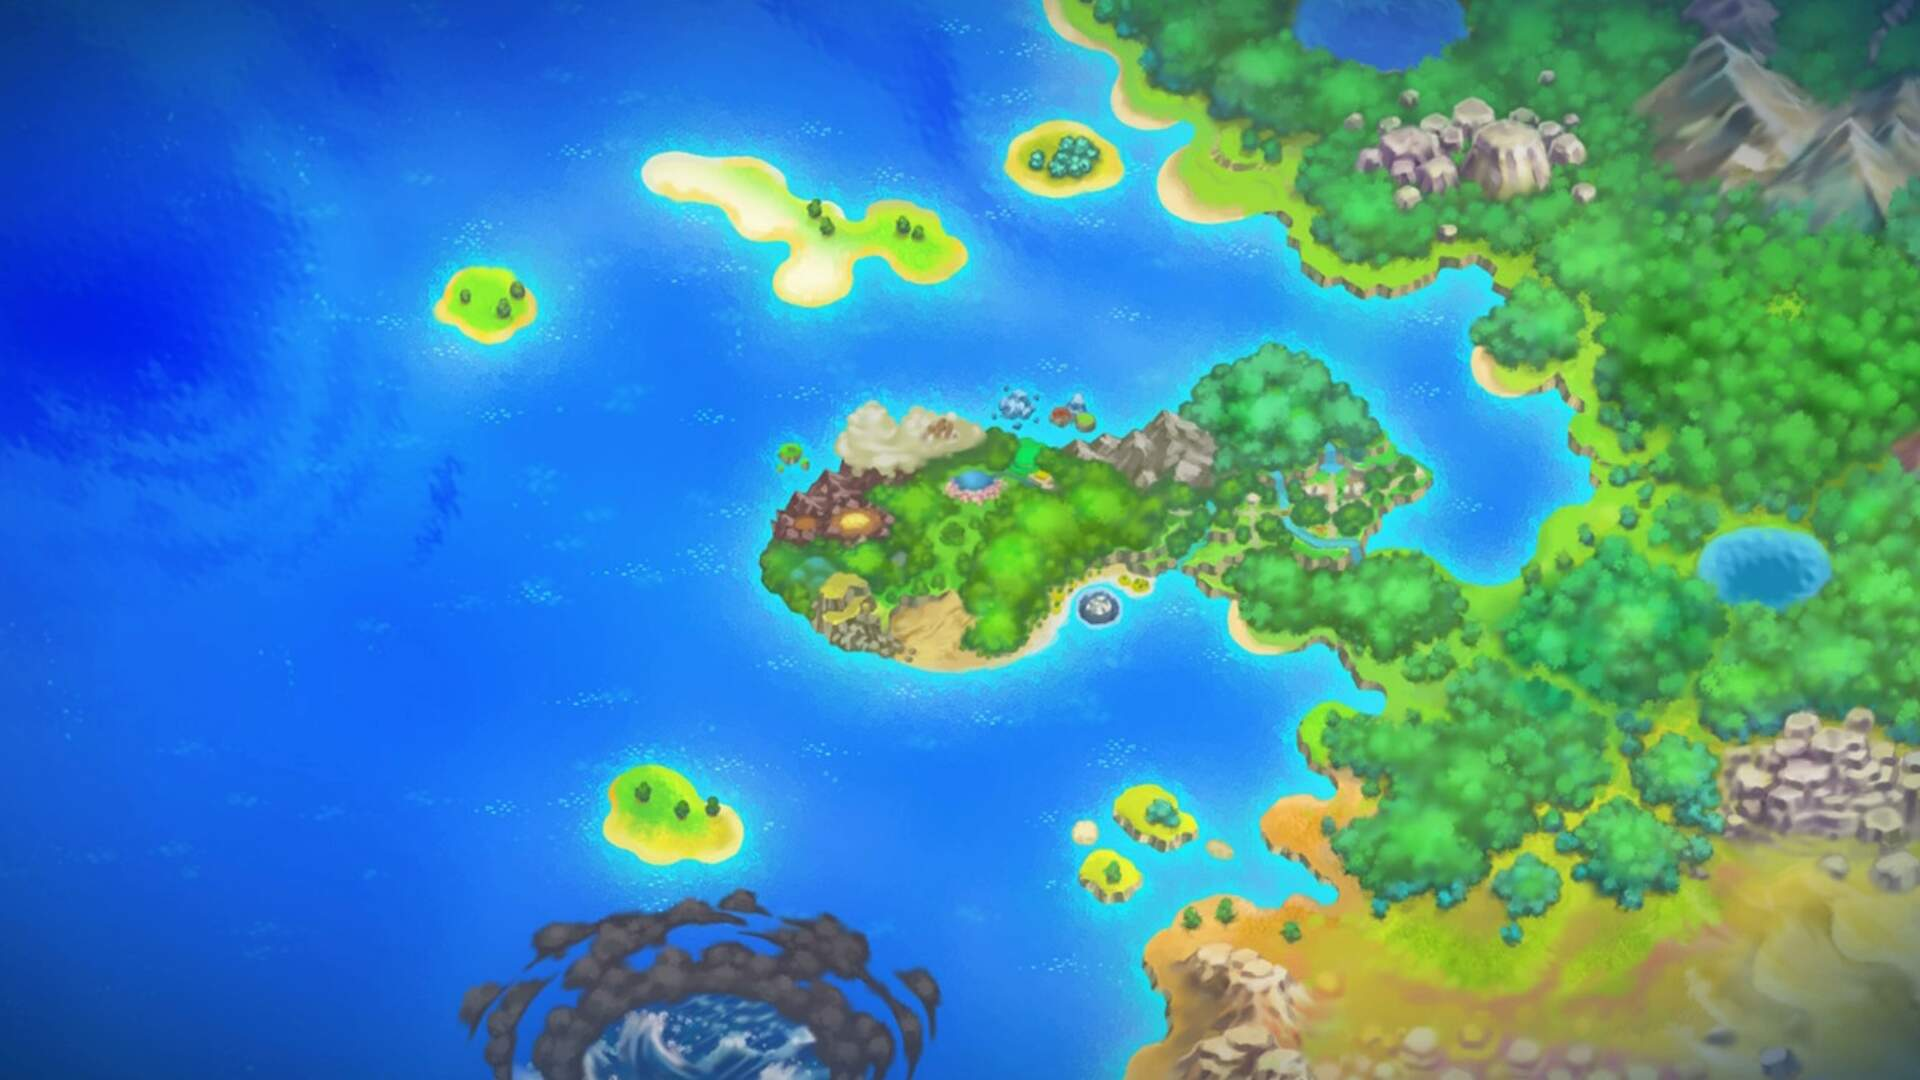 Pokemon Mystery Dungeon Rescue Team DX: Why Can't I See Enemies and Items on the Map?